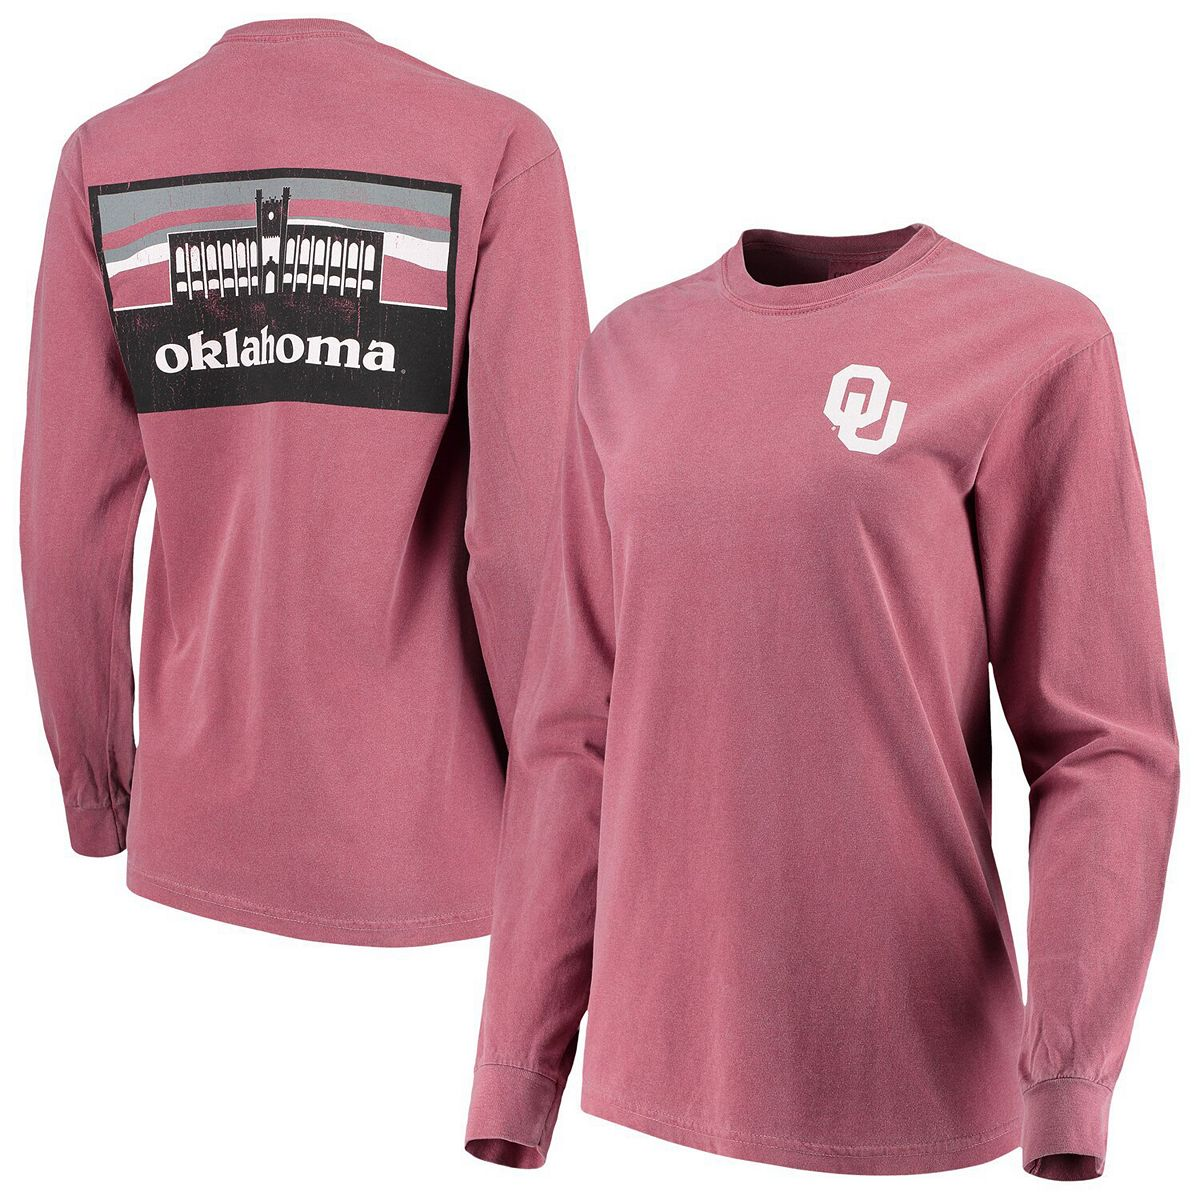 Women's Crimson Oklahoma Sooners Comfort Colors Campus Skyline Long Sleeve Oversized T-Shirt 9wCWl